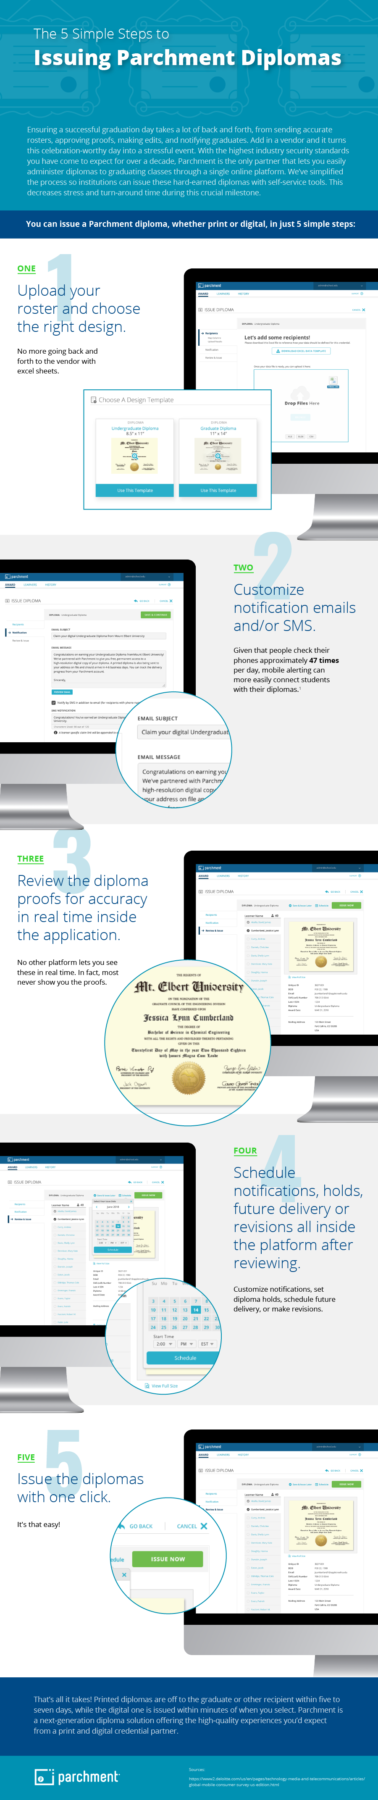 5-simple-steps-to-issue-parchment-diplomas-2